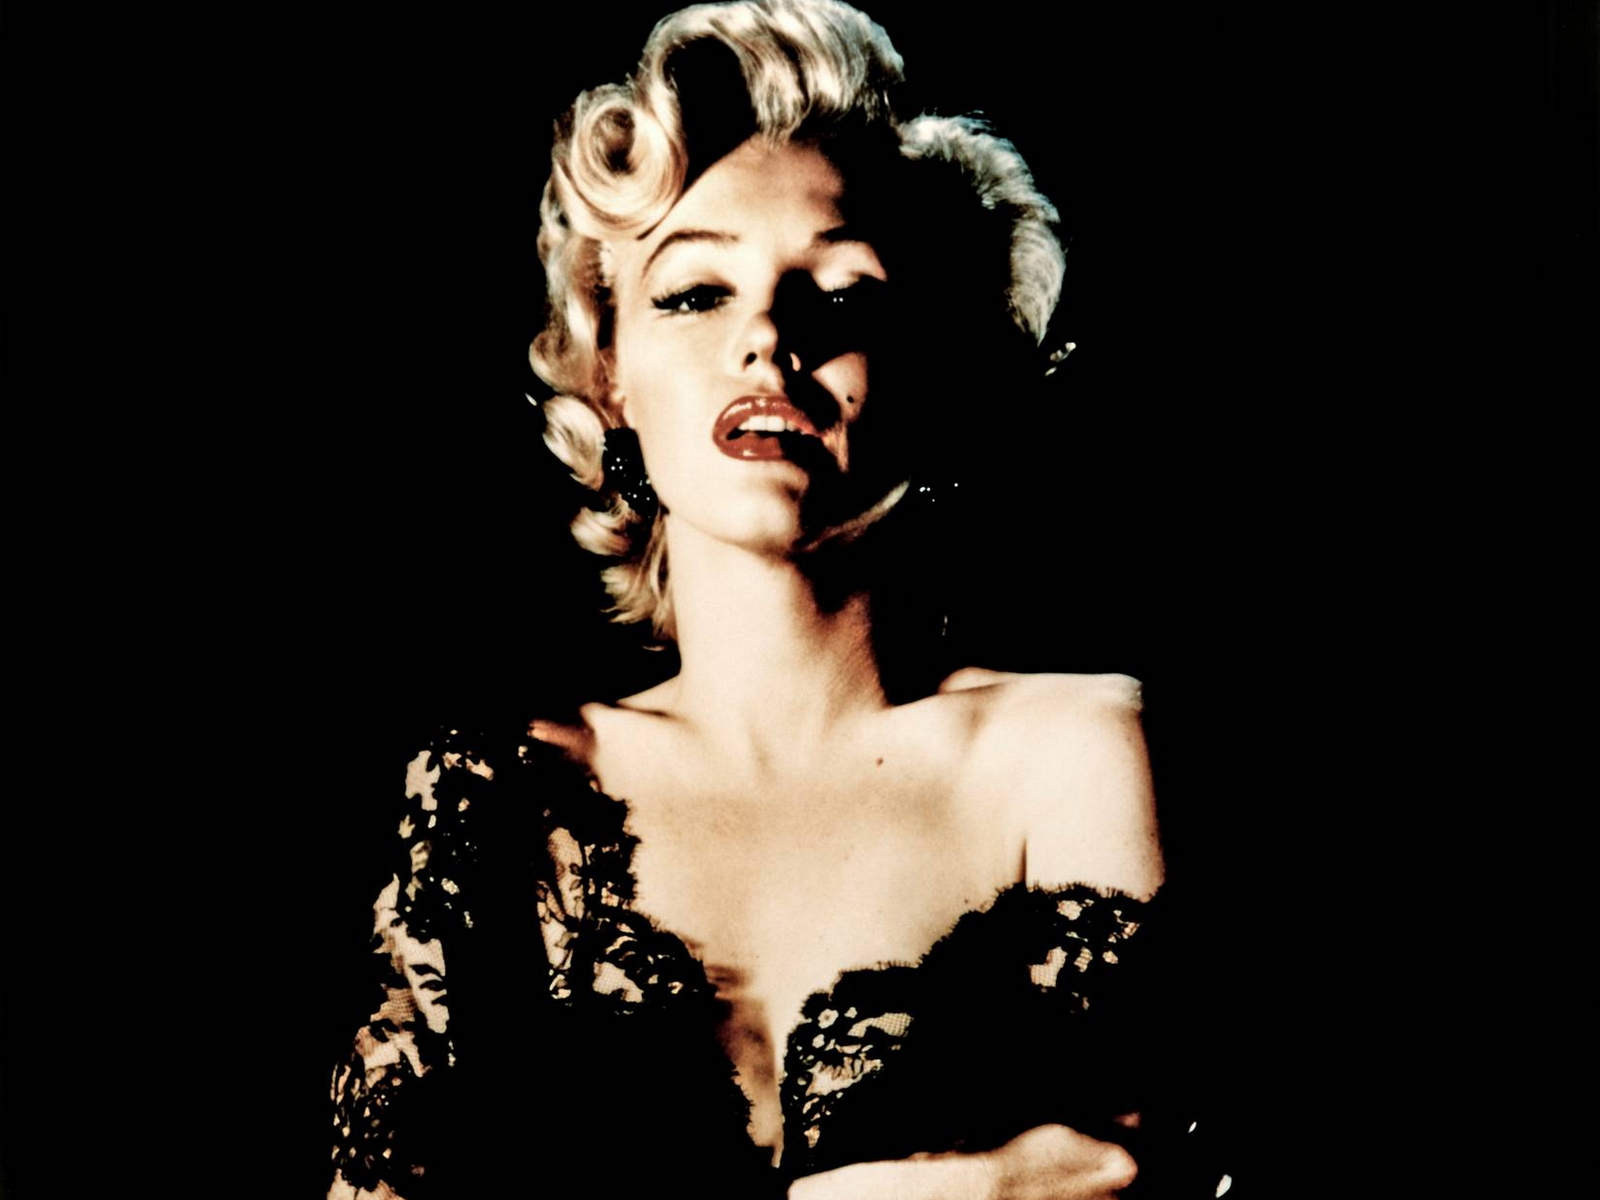 www.biography.com/people/marilyn-monroe-9412123/videos/marilyn-monroe